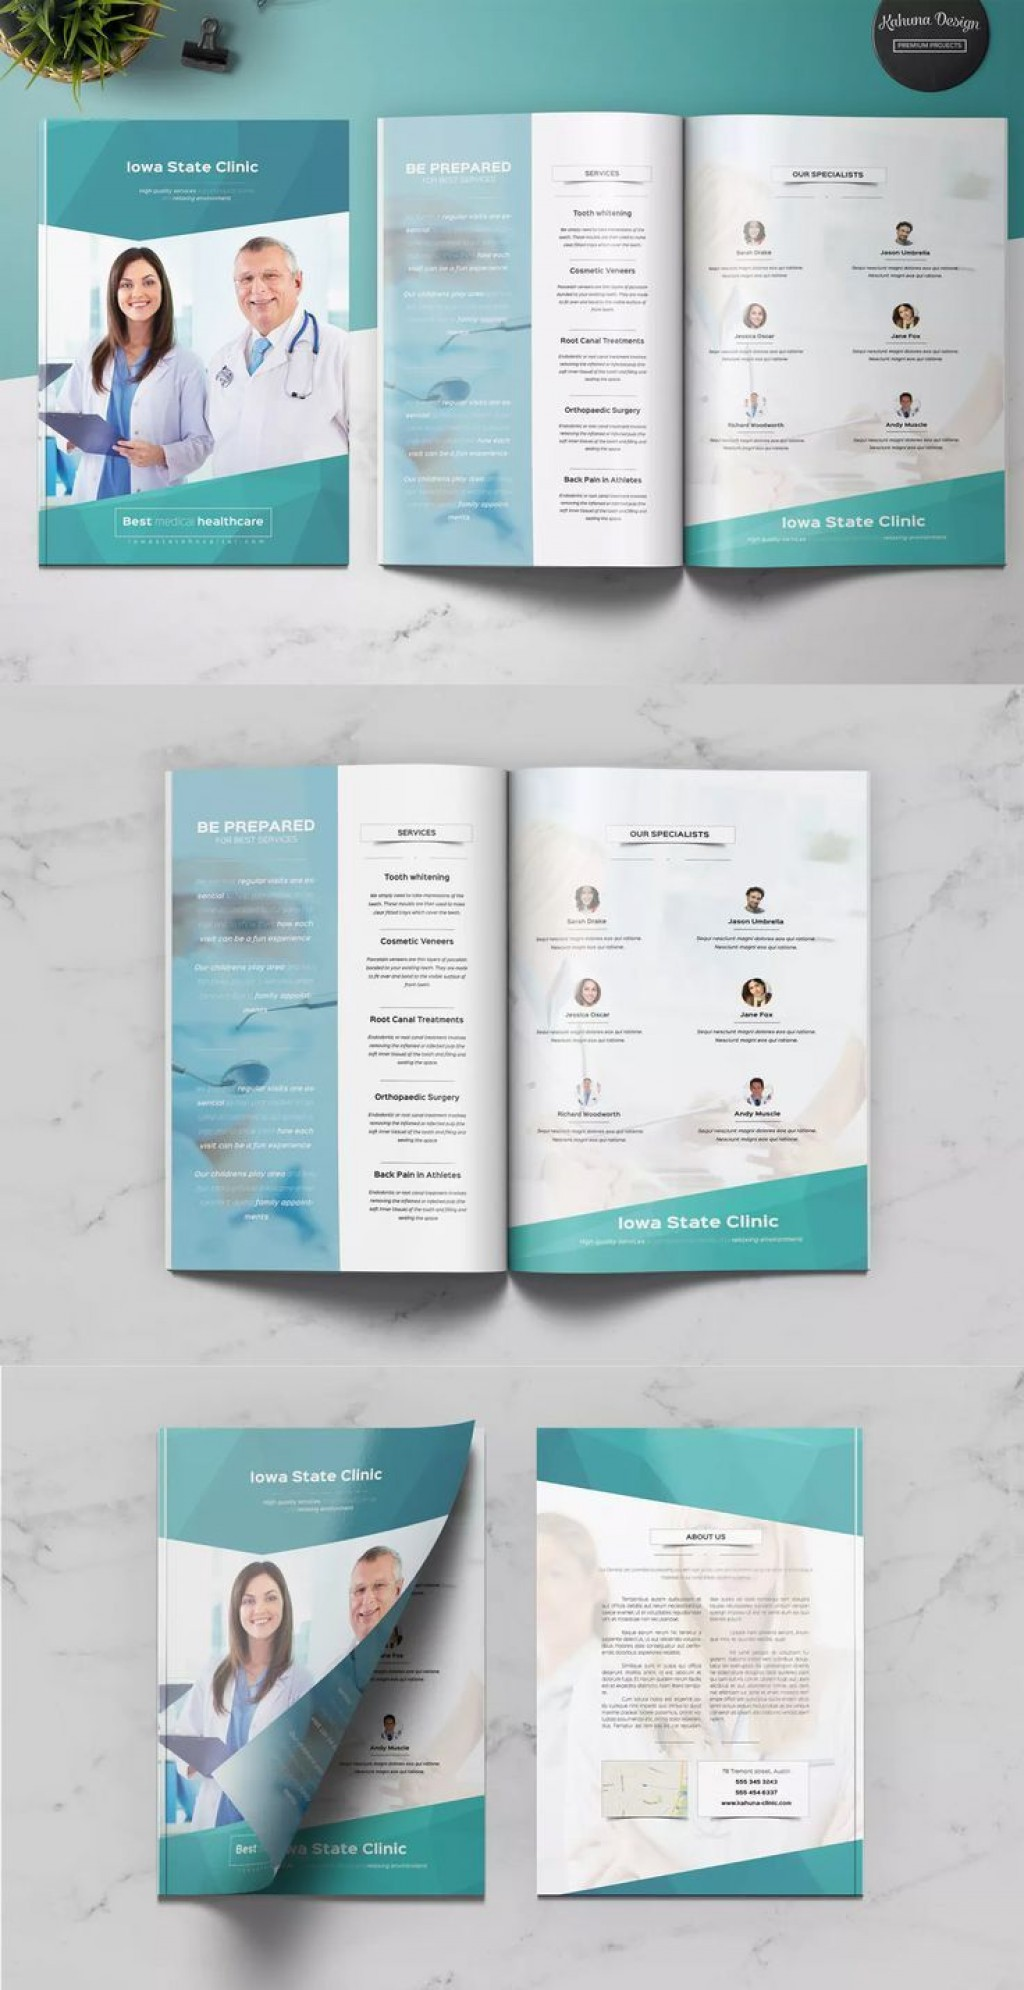 005 Fascinating Download Brochure Template For Word 2007 Highest Clarity Large